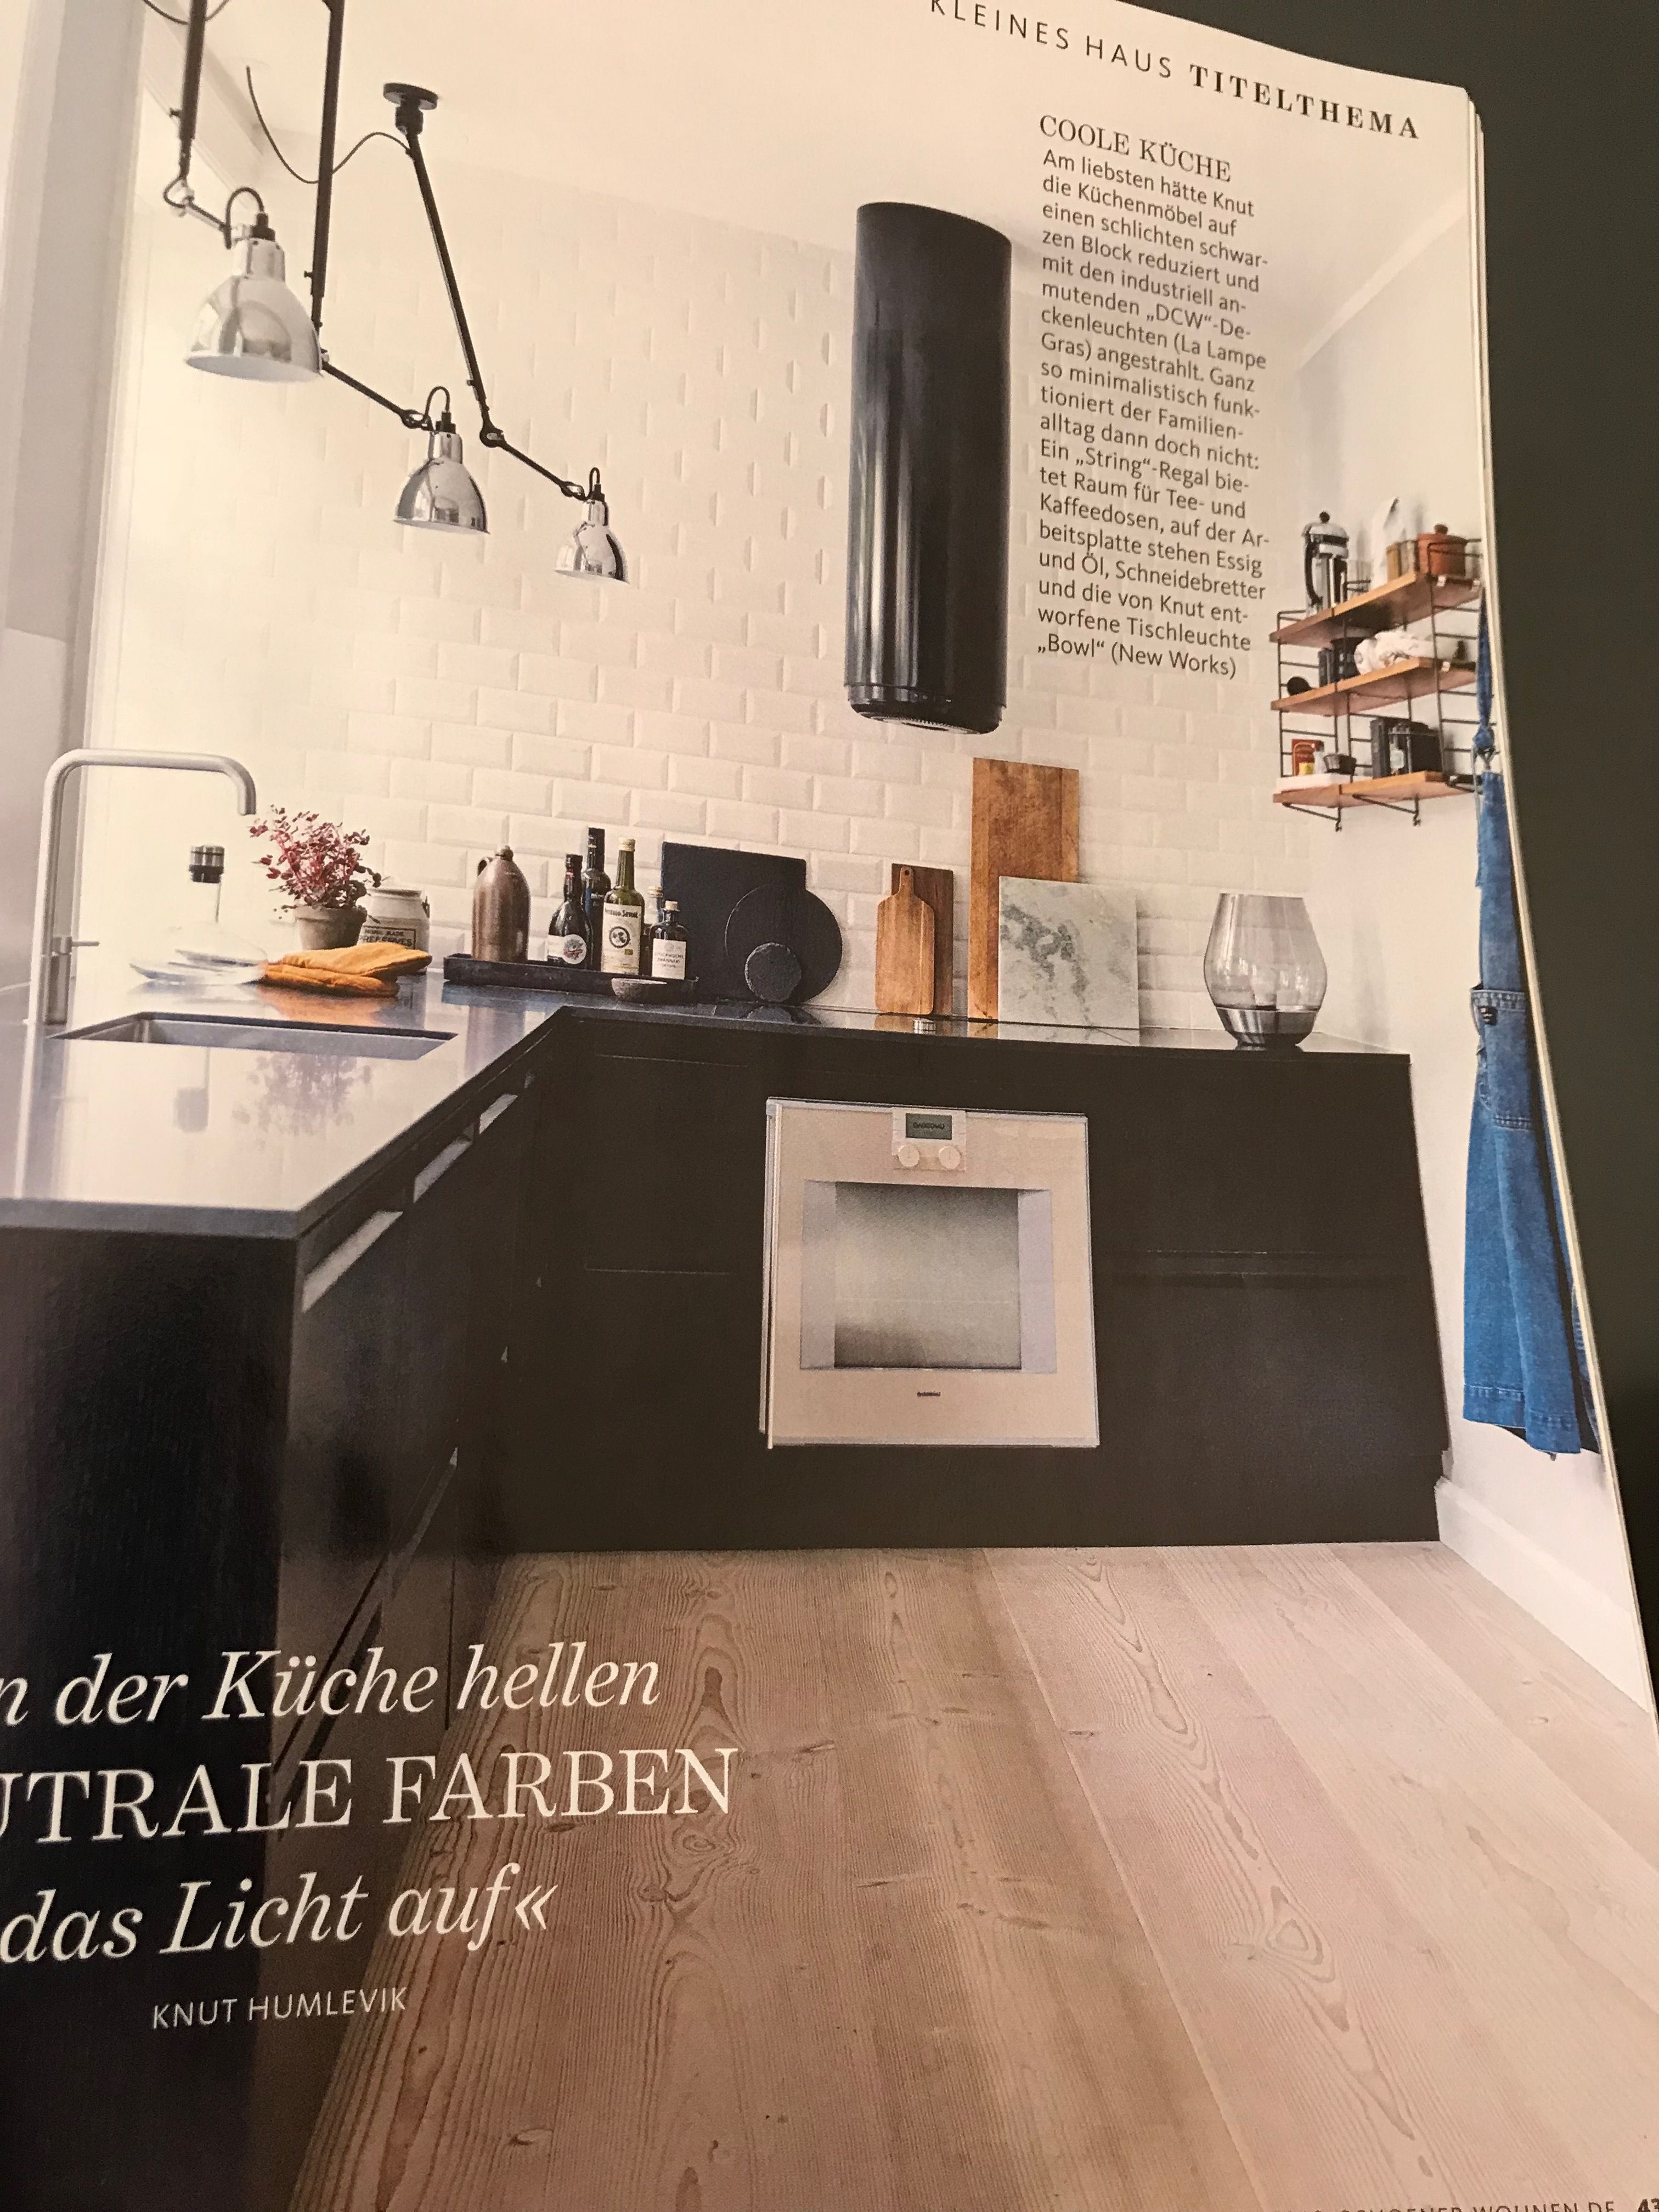 Rahaus Kücheninsel Pin By Meghan On Kitchen Idea | Kitchen, Home Decor, Decor